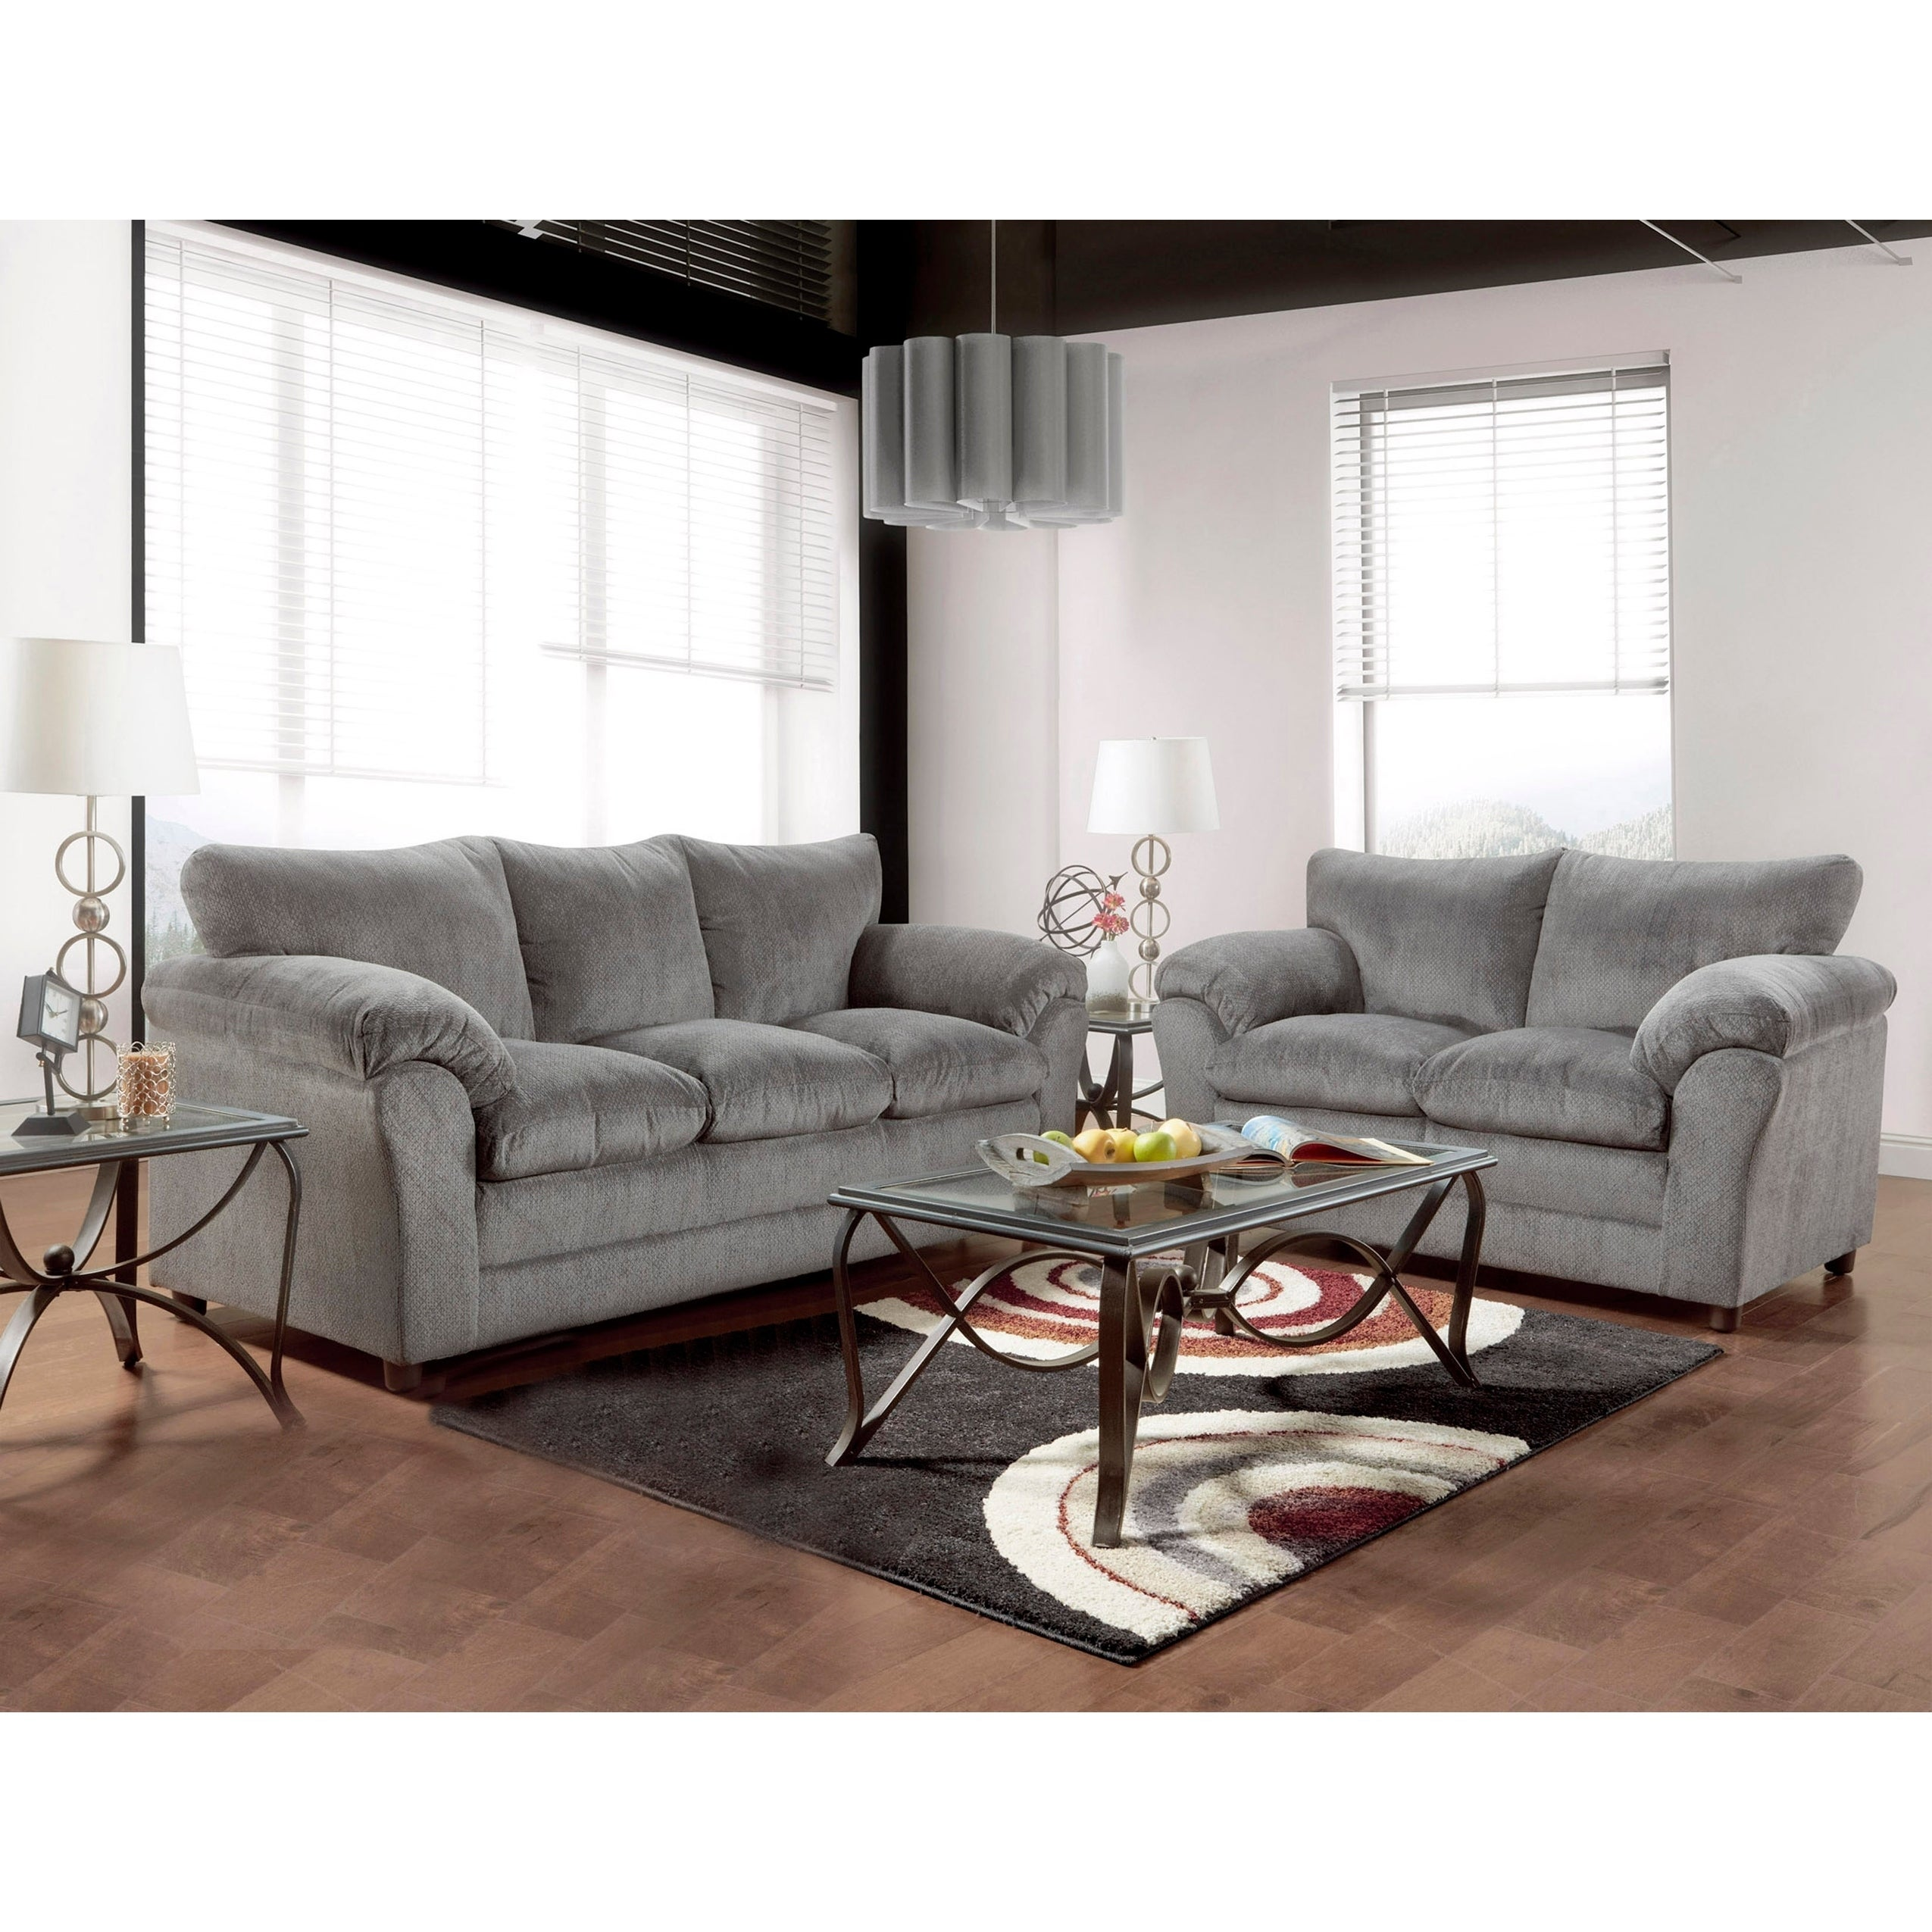 Enjoyable Copper Grove Malva Grey Sofa Loveseat 2 Piece Set Interior Design Ideas Clesiryabchikinfo